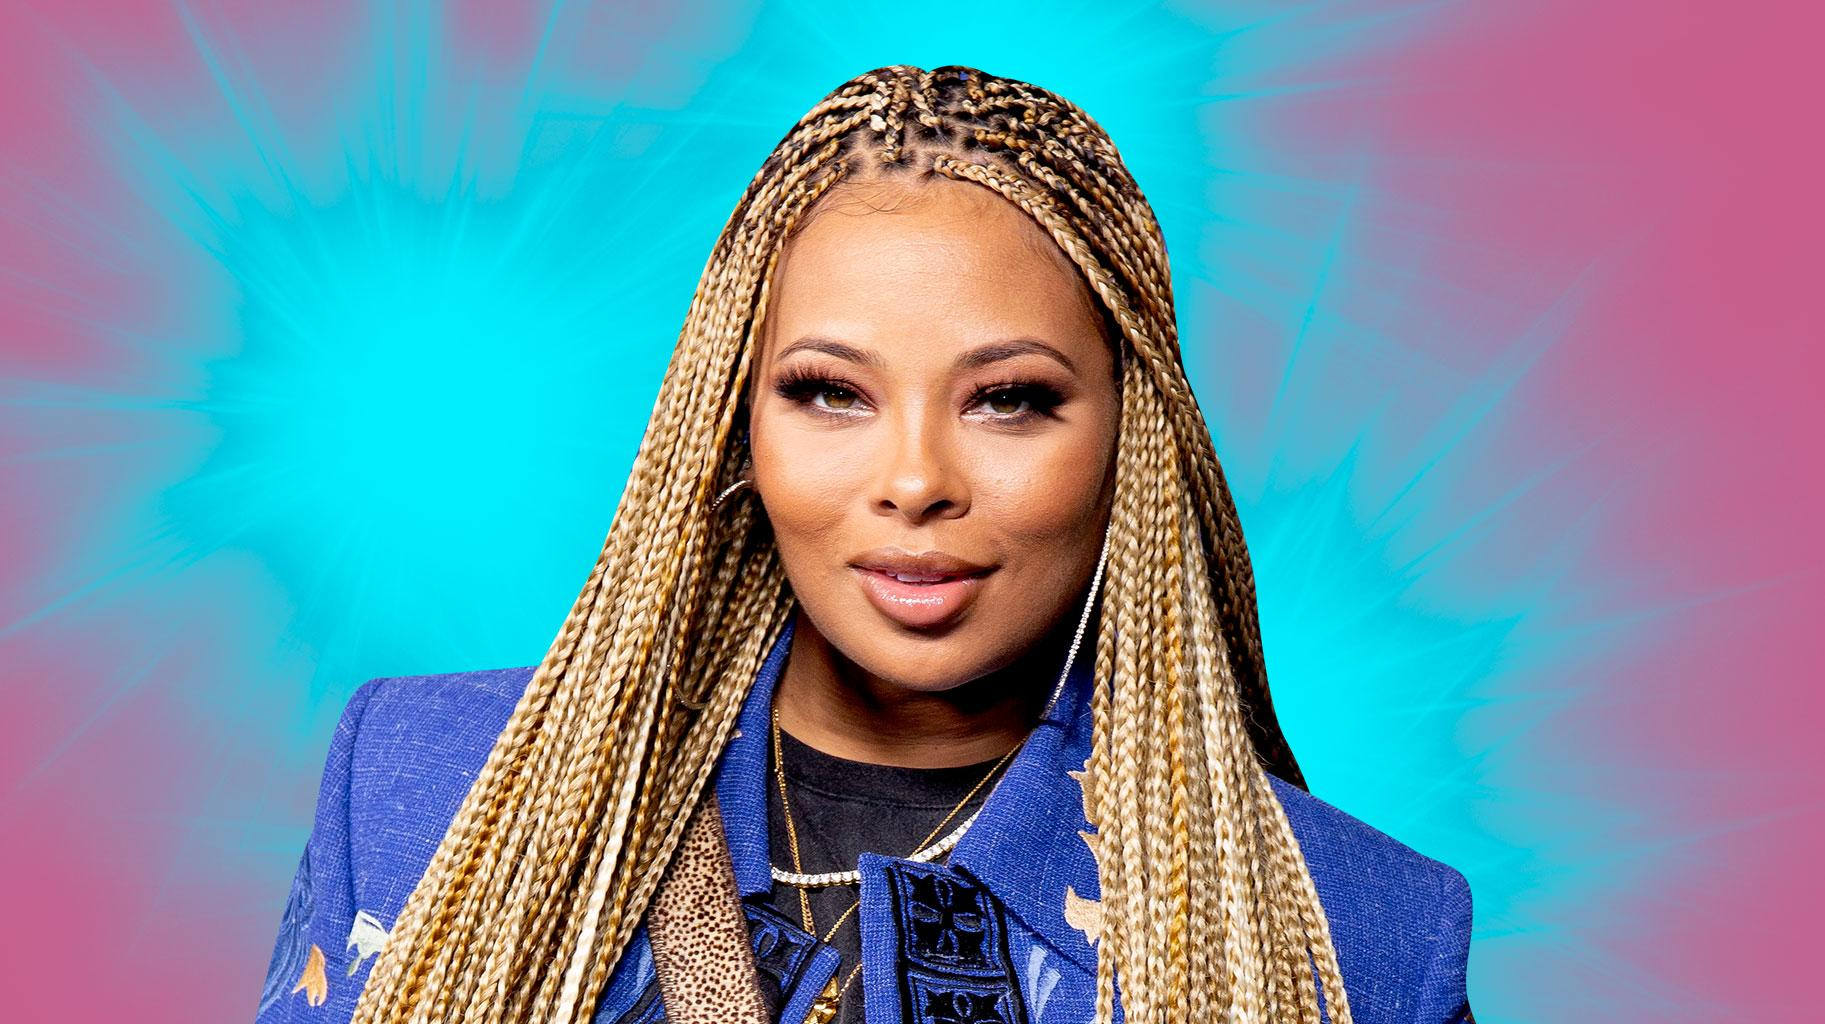 Eva Marcille's Morning Look Has Fans Praising Her Fresh Face - See Her Latest Pics From Under The Covers